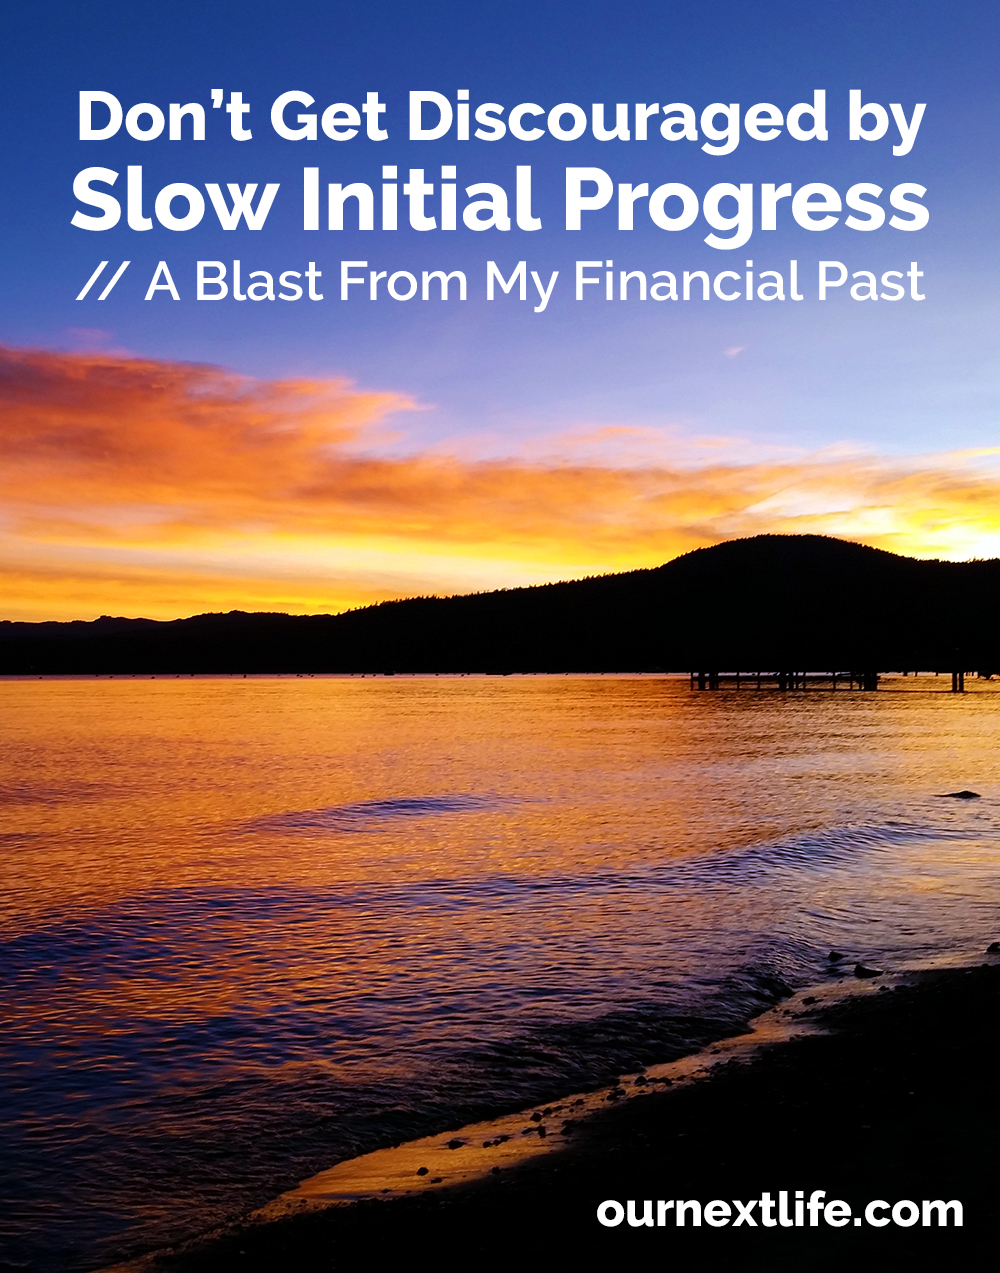 Don't get discouraged by slow initial progress toward early retirement, financial independence or other large money goals! Your progress will speed up over time!